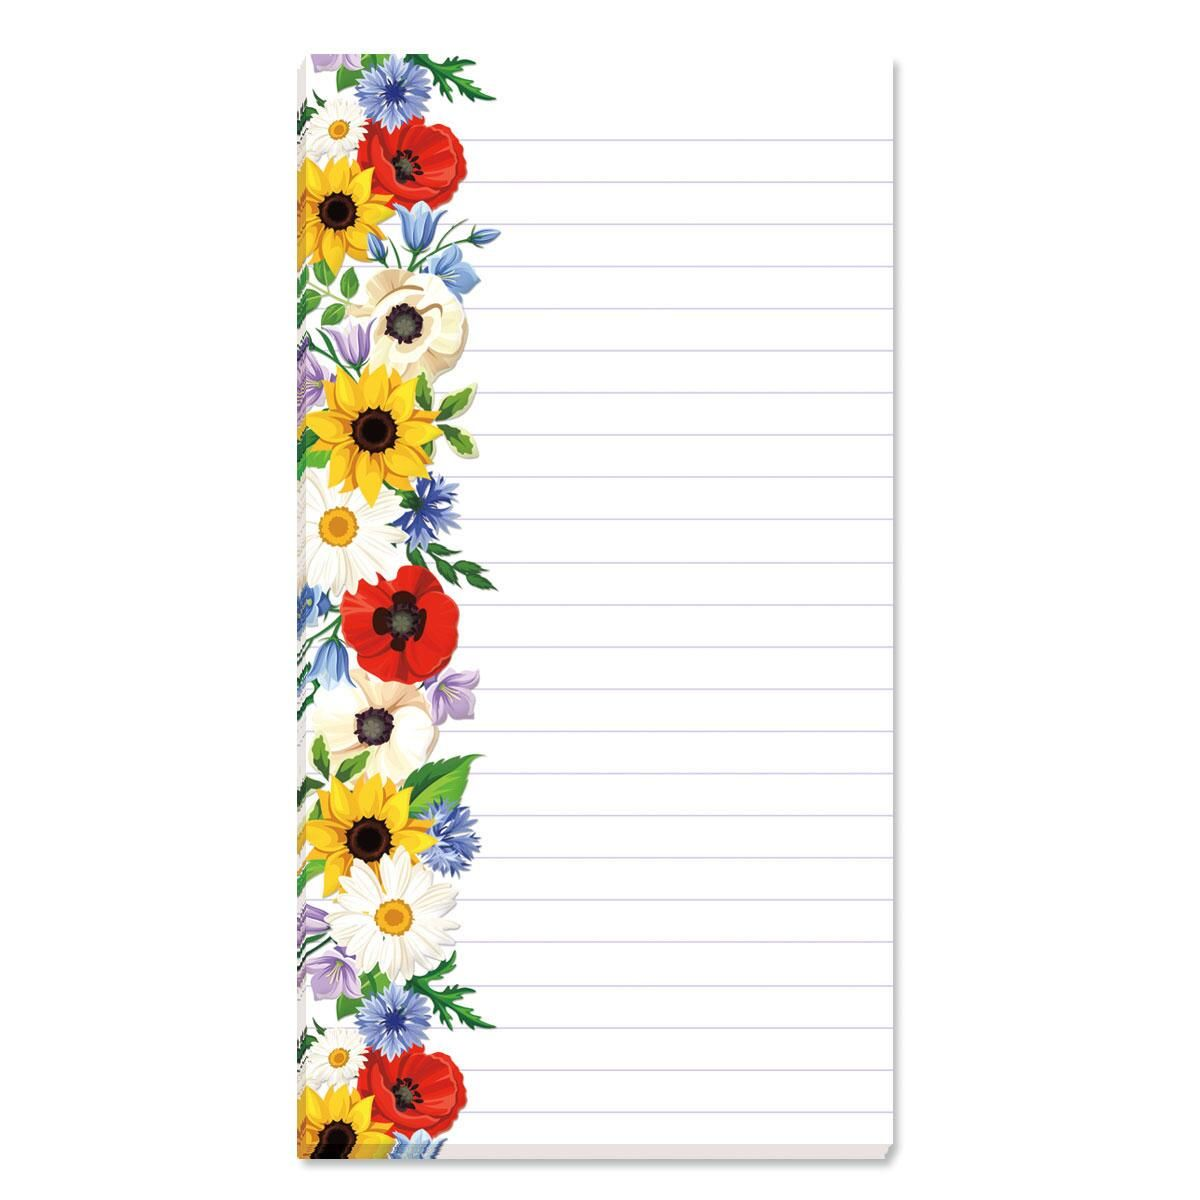 Poppies, Sunflowers & Daisies Lined Shopping List Pads